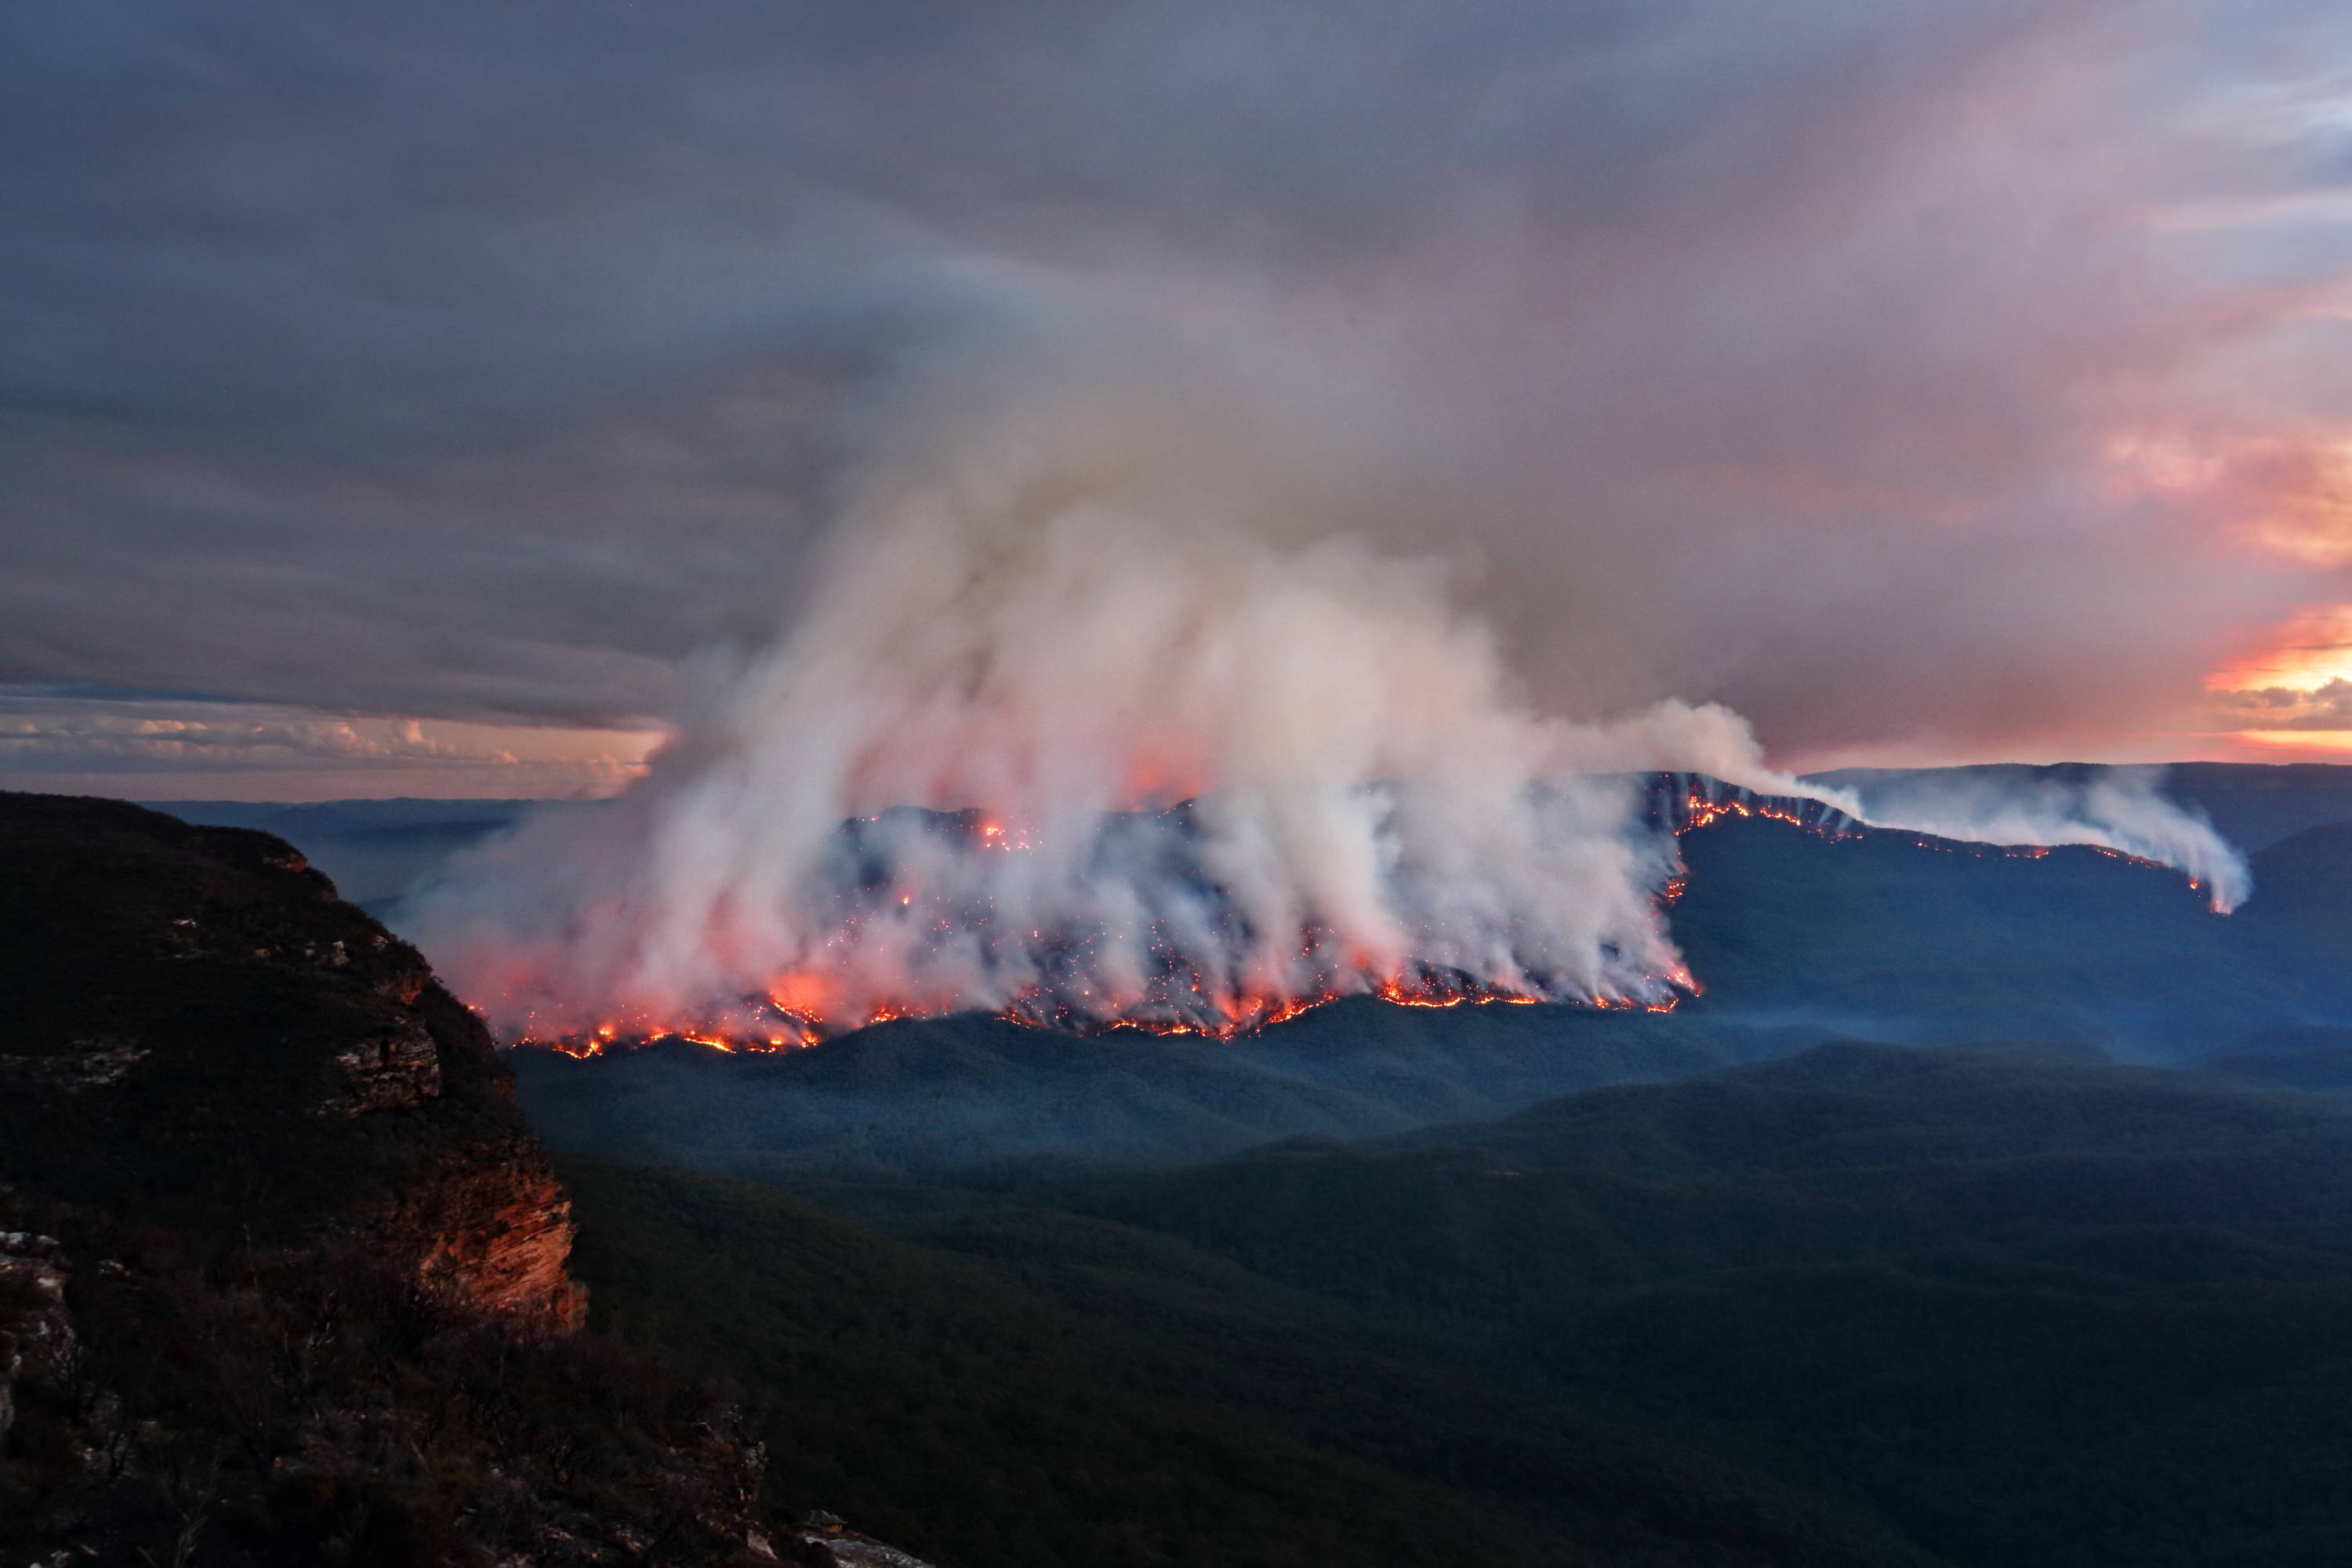 mt solitary burns at dusk from australian bushfire